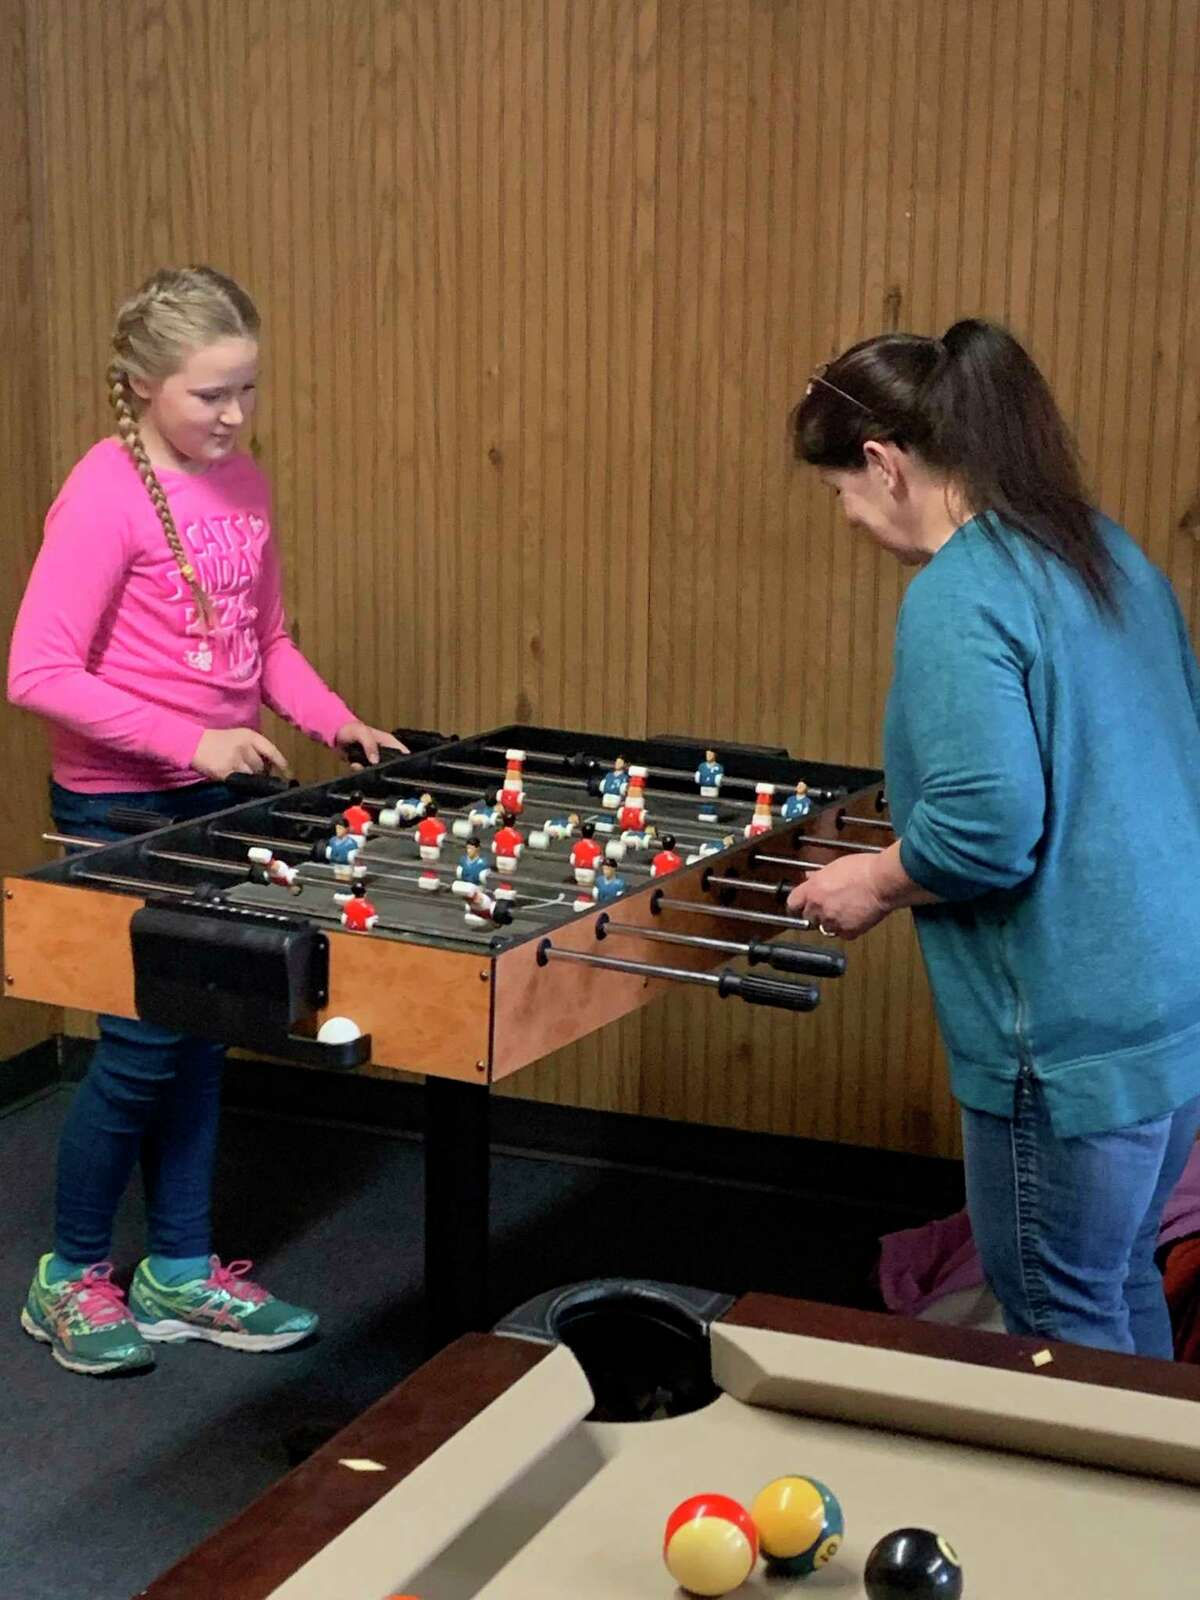 Chris Garcia plays some foosball with her daughter Jordon Smith during last week's activities at the Morley Community Center. (Courtesy photo/Morley Community Center)